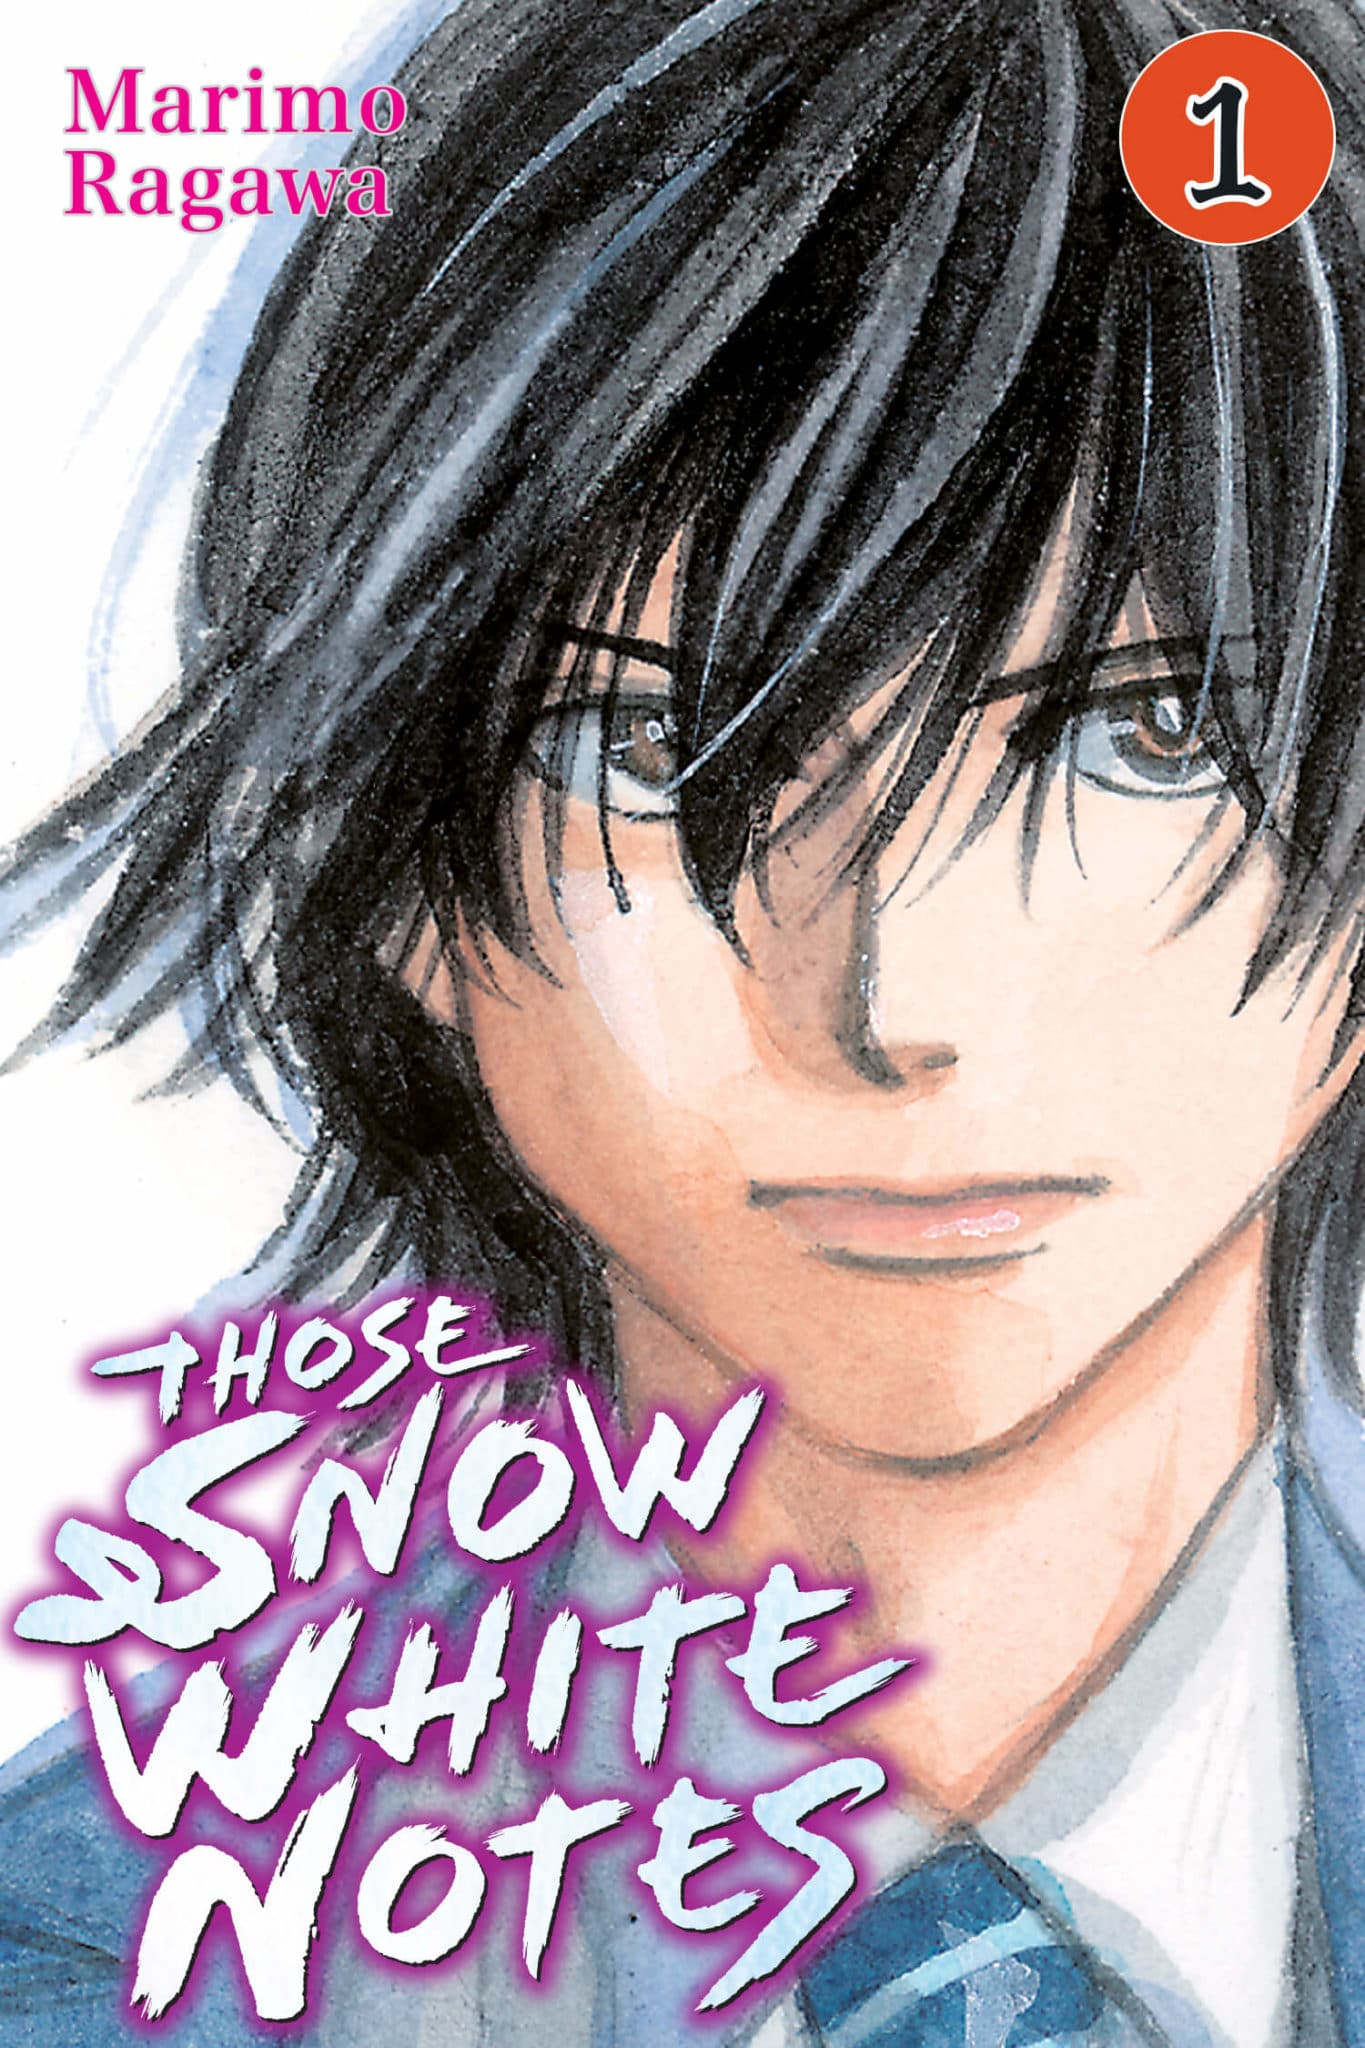 Those Snow White Notes Volume 1 Review